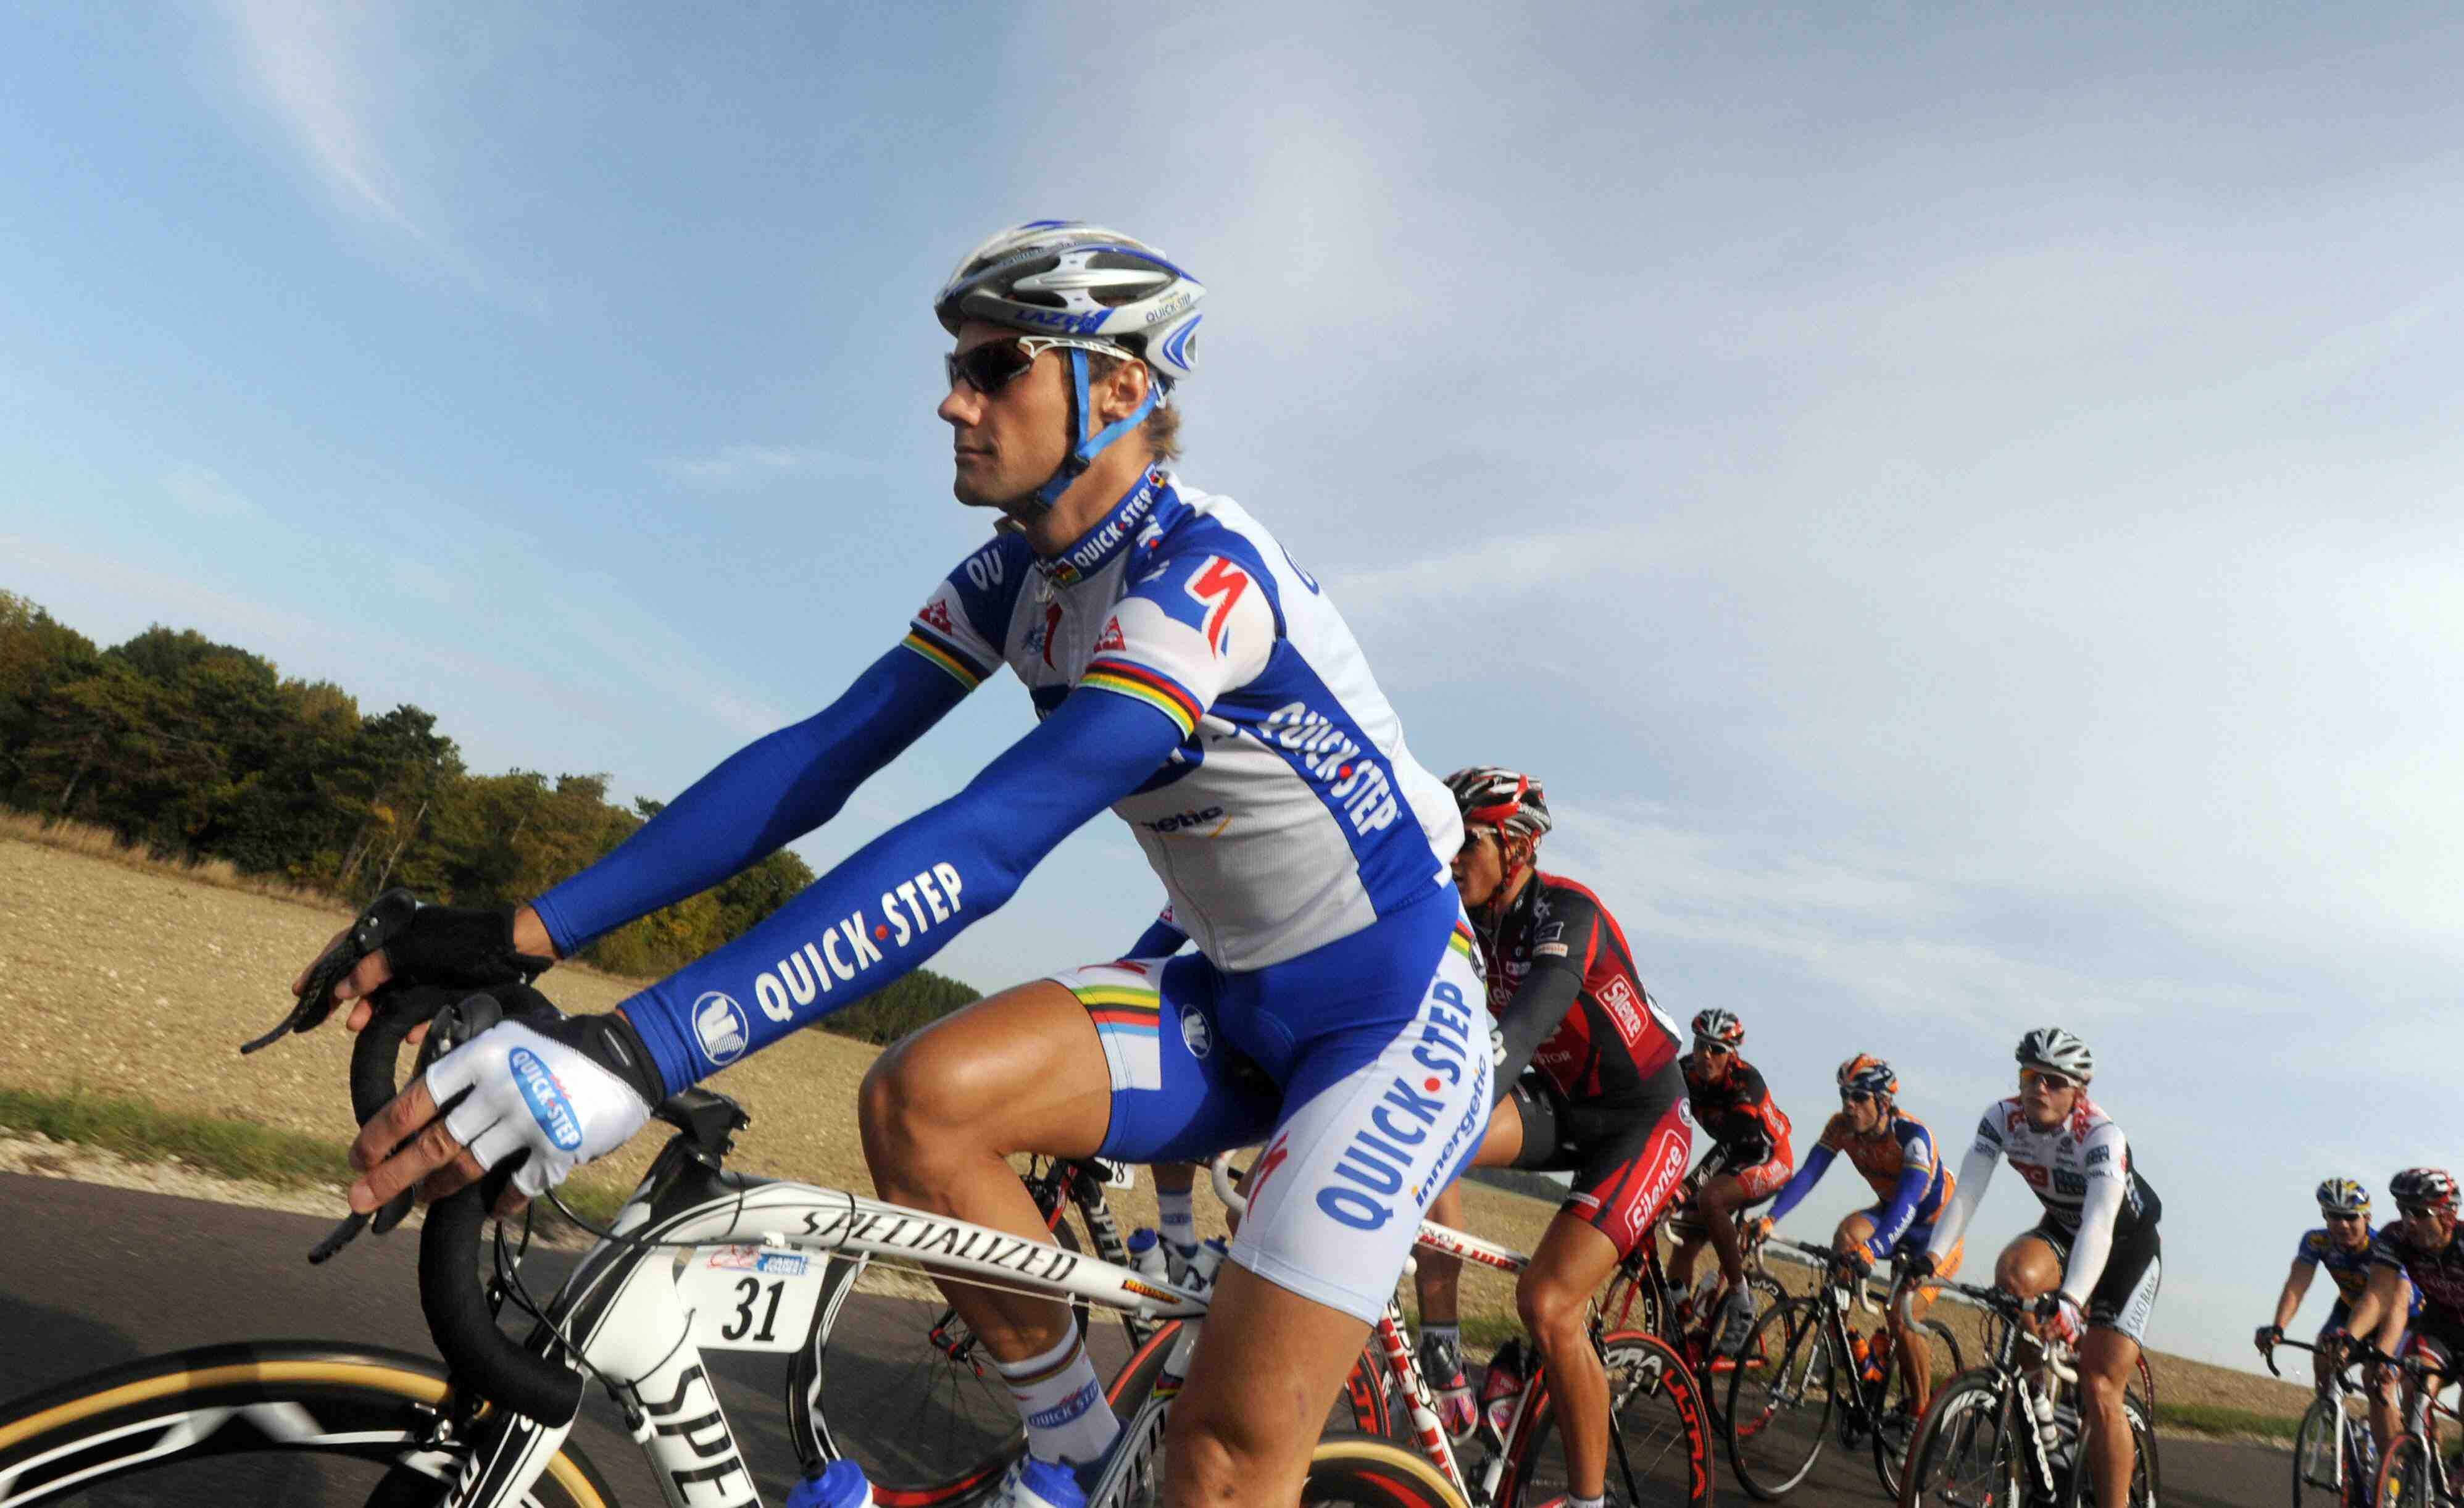 Belgian Tom Boonen rides in the pack during the Paris-Tours cycling race on October 12, 2008 between Paris and Tours.